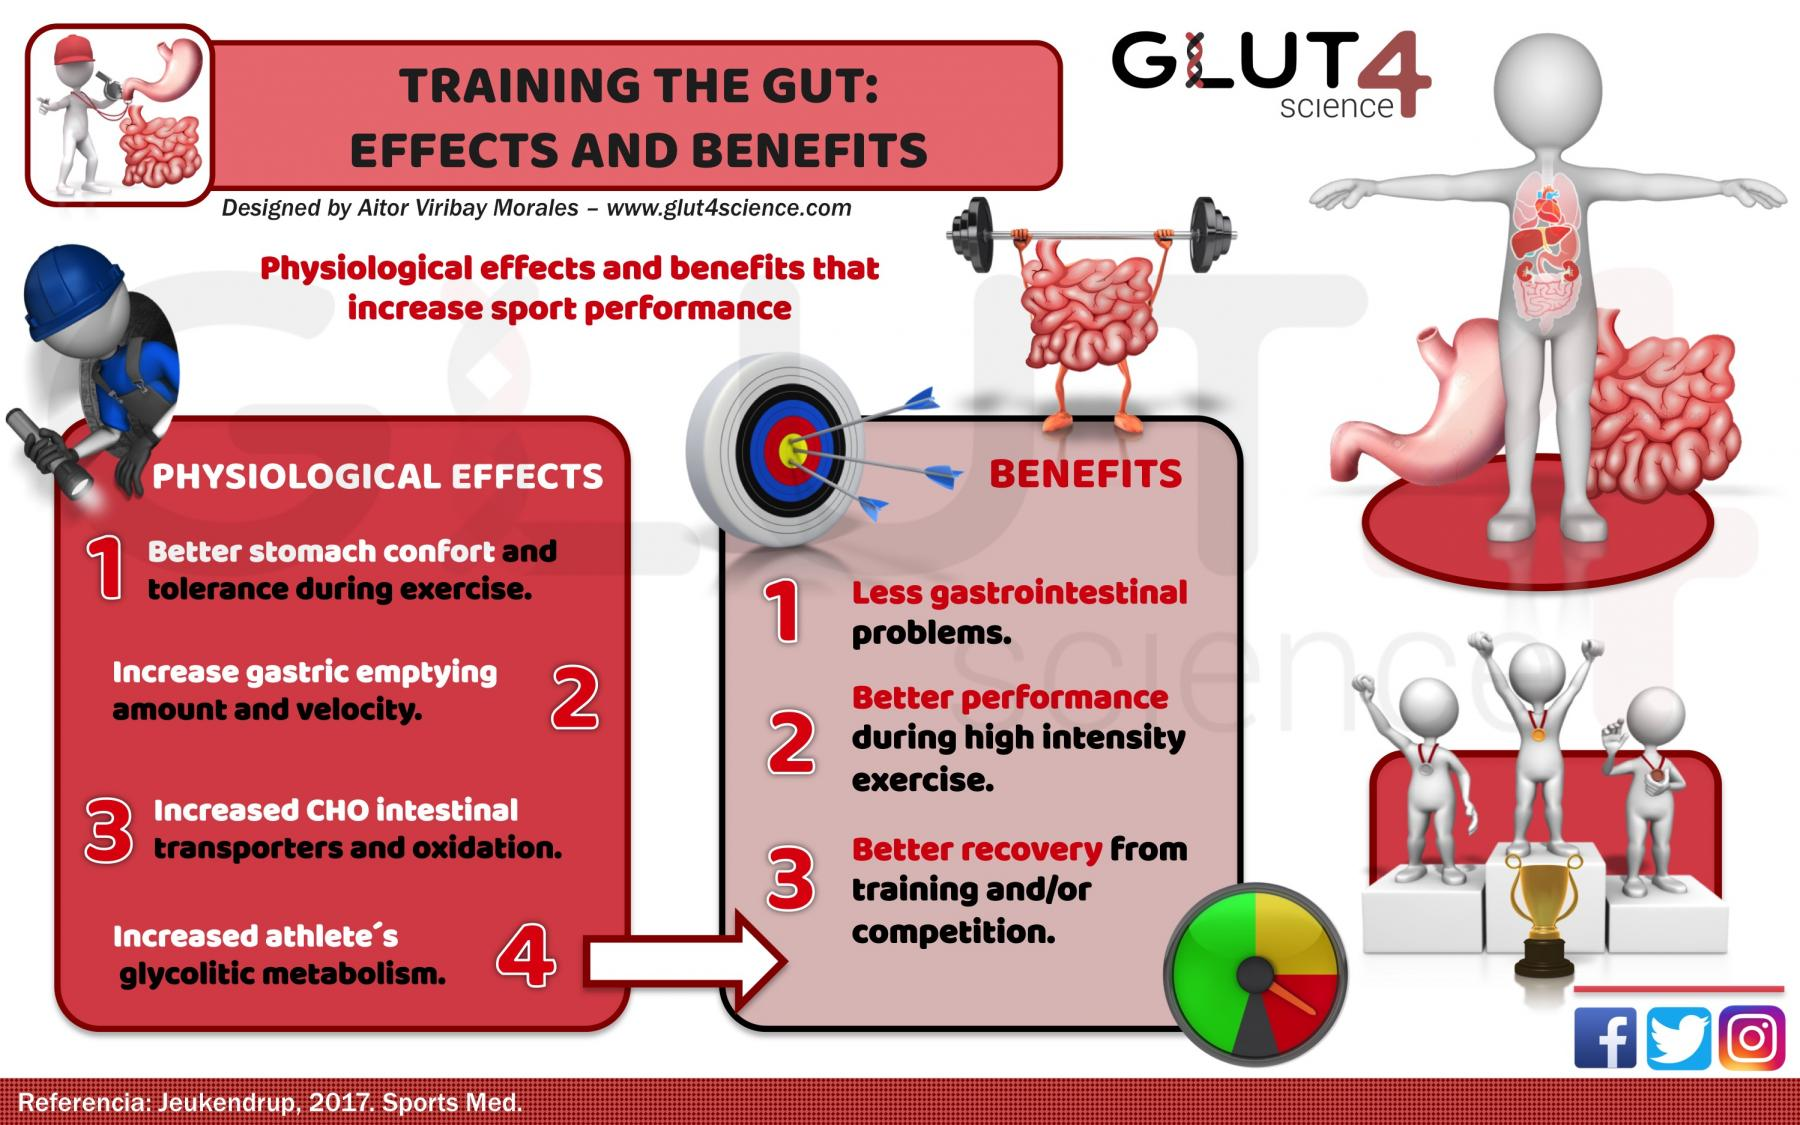 Benefits and effects: Training the gut